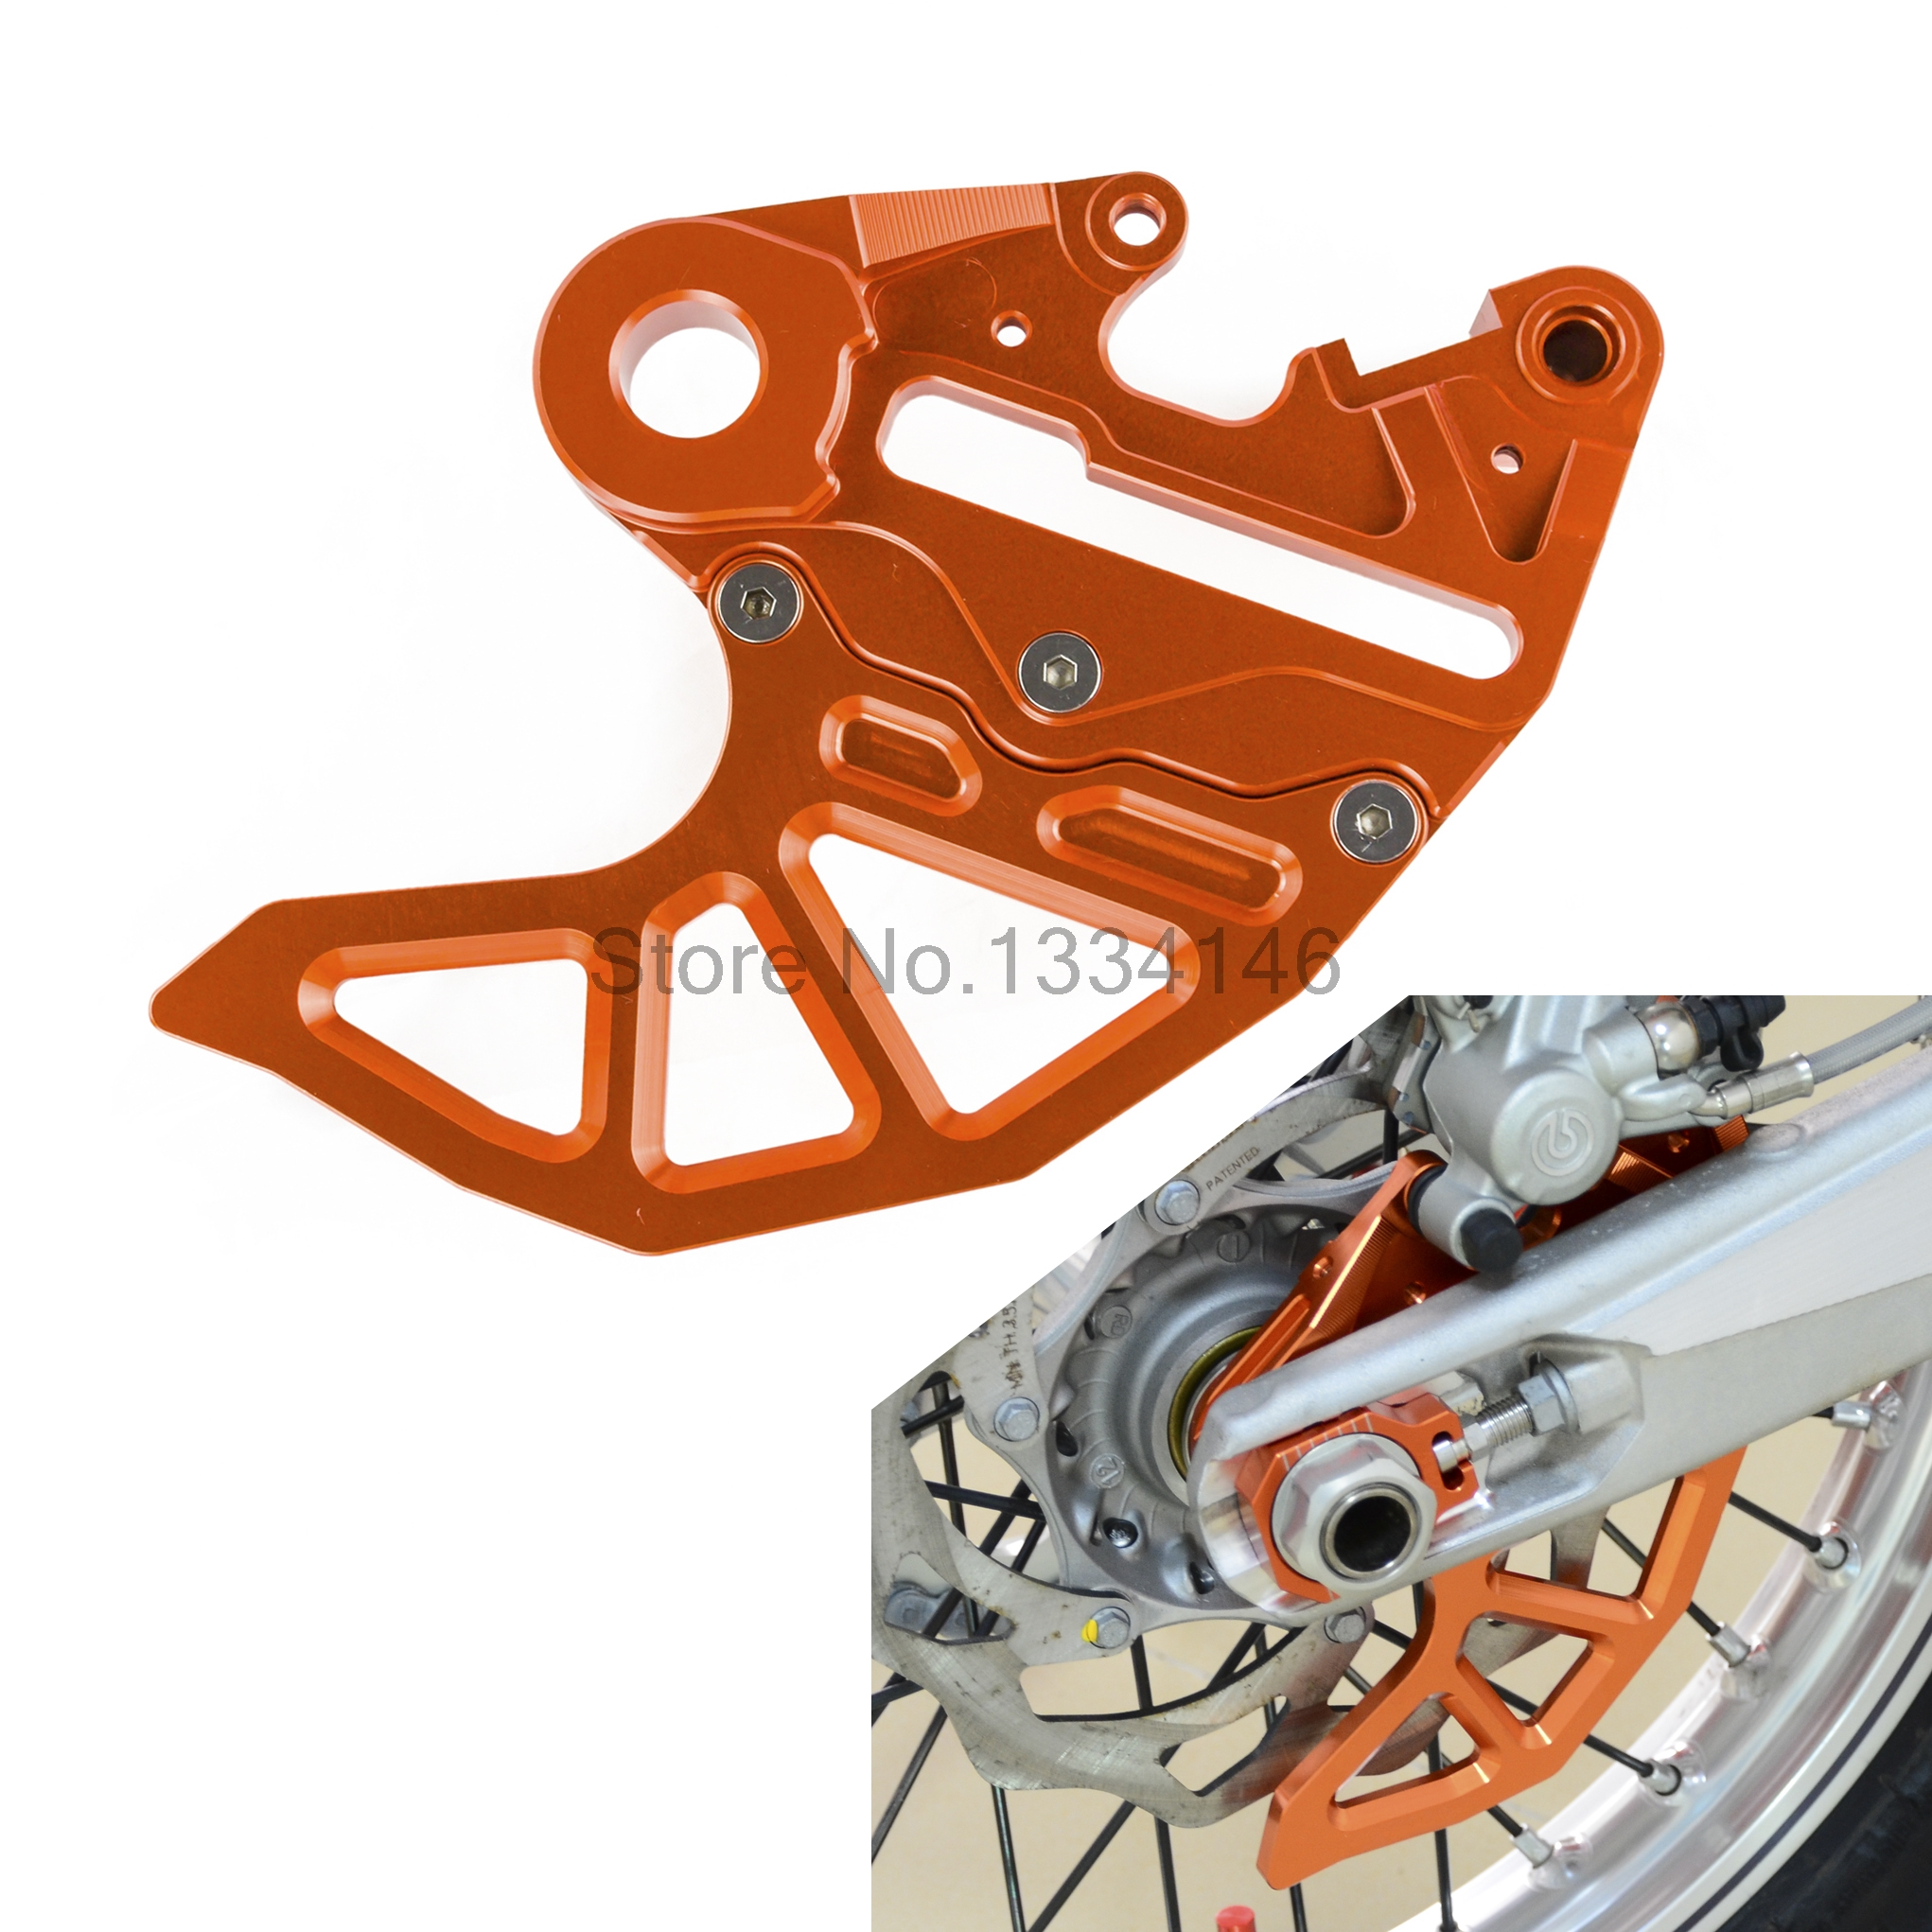 NICECNC Caliper Support Rear Brake Disc Guard For KTM 125 150 200 250 300 350 450 500 530 XC EXC XC-W EXC-F SX SX-F XCF-W XC-F motorcycle front and rear brake pads for ktm exc r450 2008 sx f 450 usd 2003 2008 xc f xcr w 450 2008 black brake disc pad